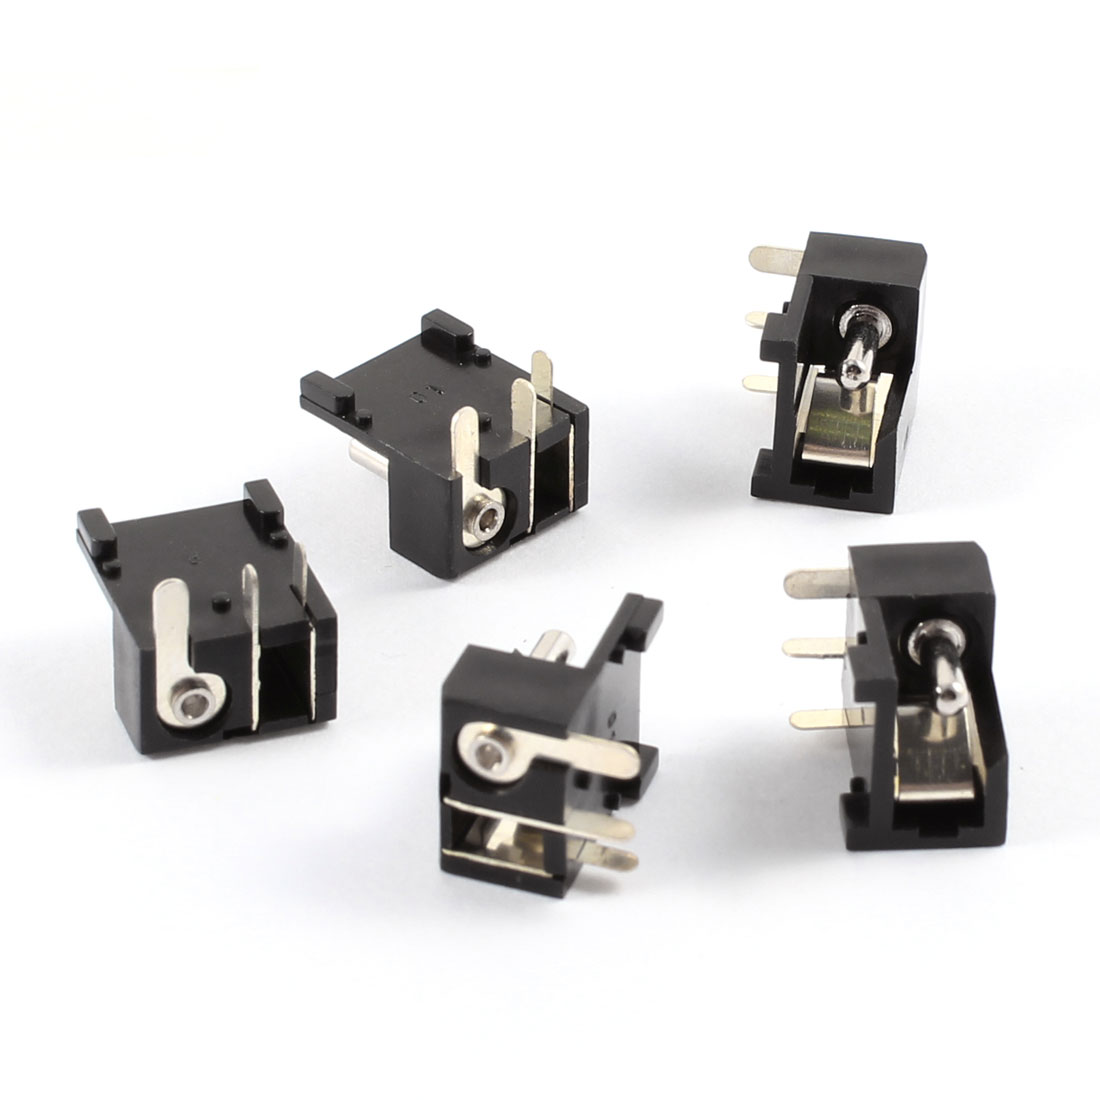 5 Pcs PJ029B 2.0mm DC Power Jack Connector for HP Omnibook 900